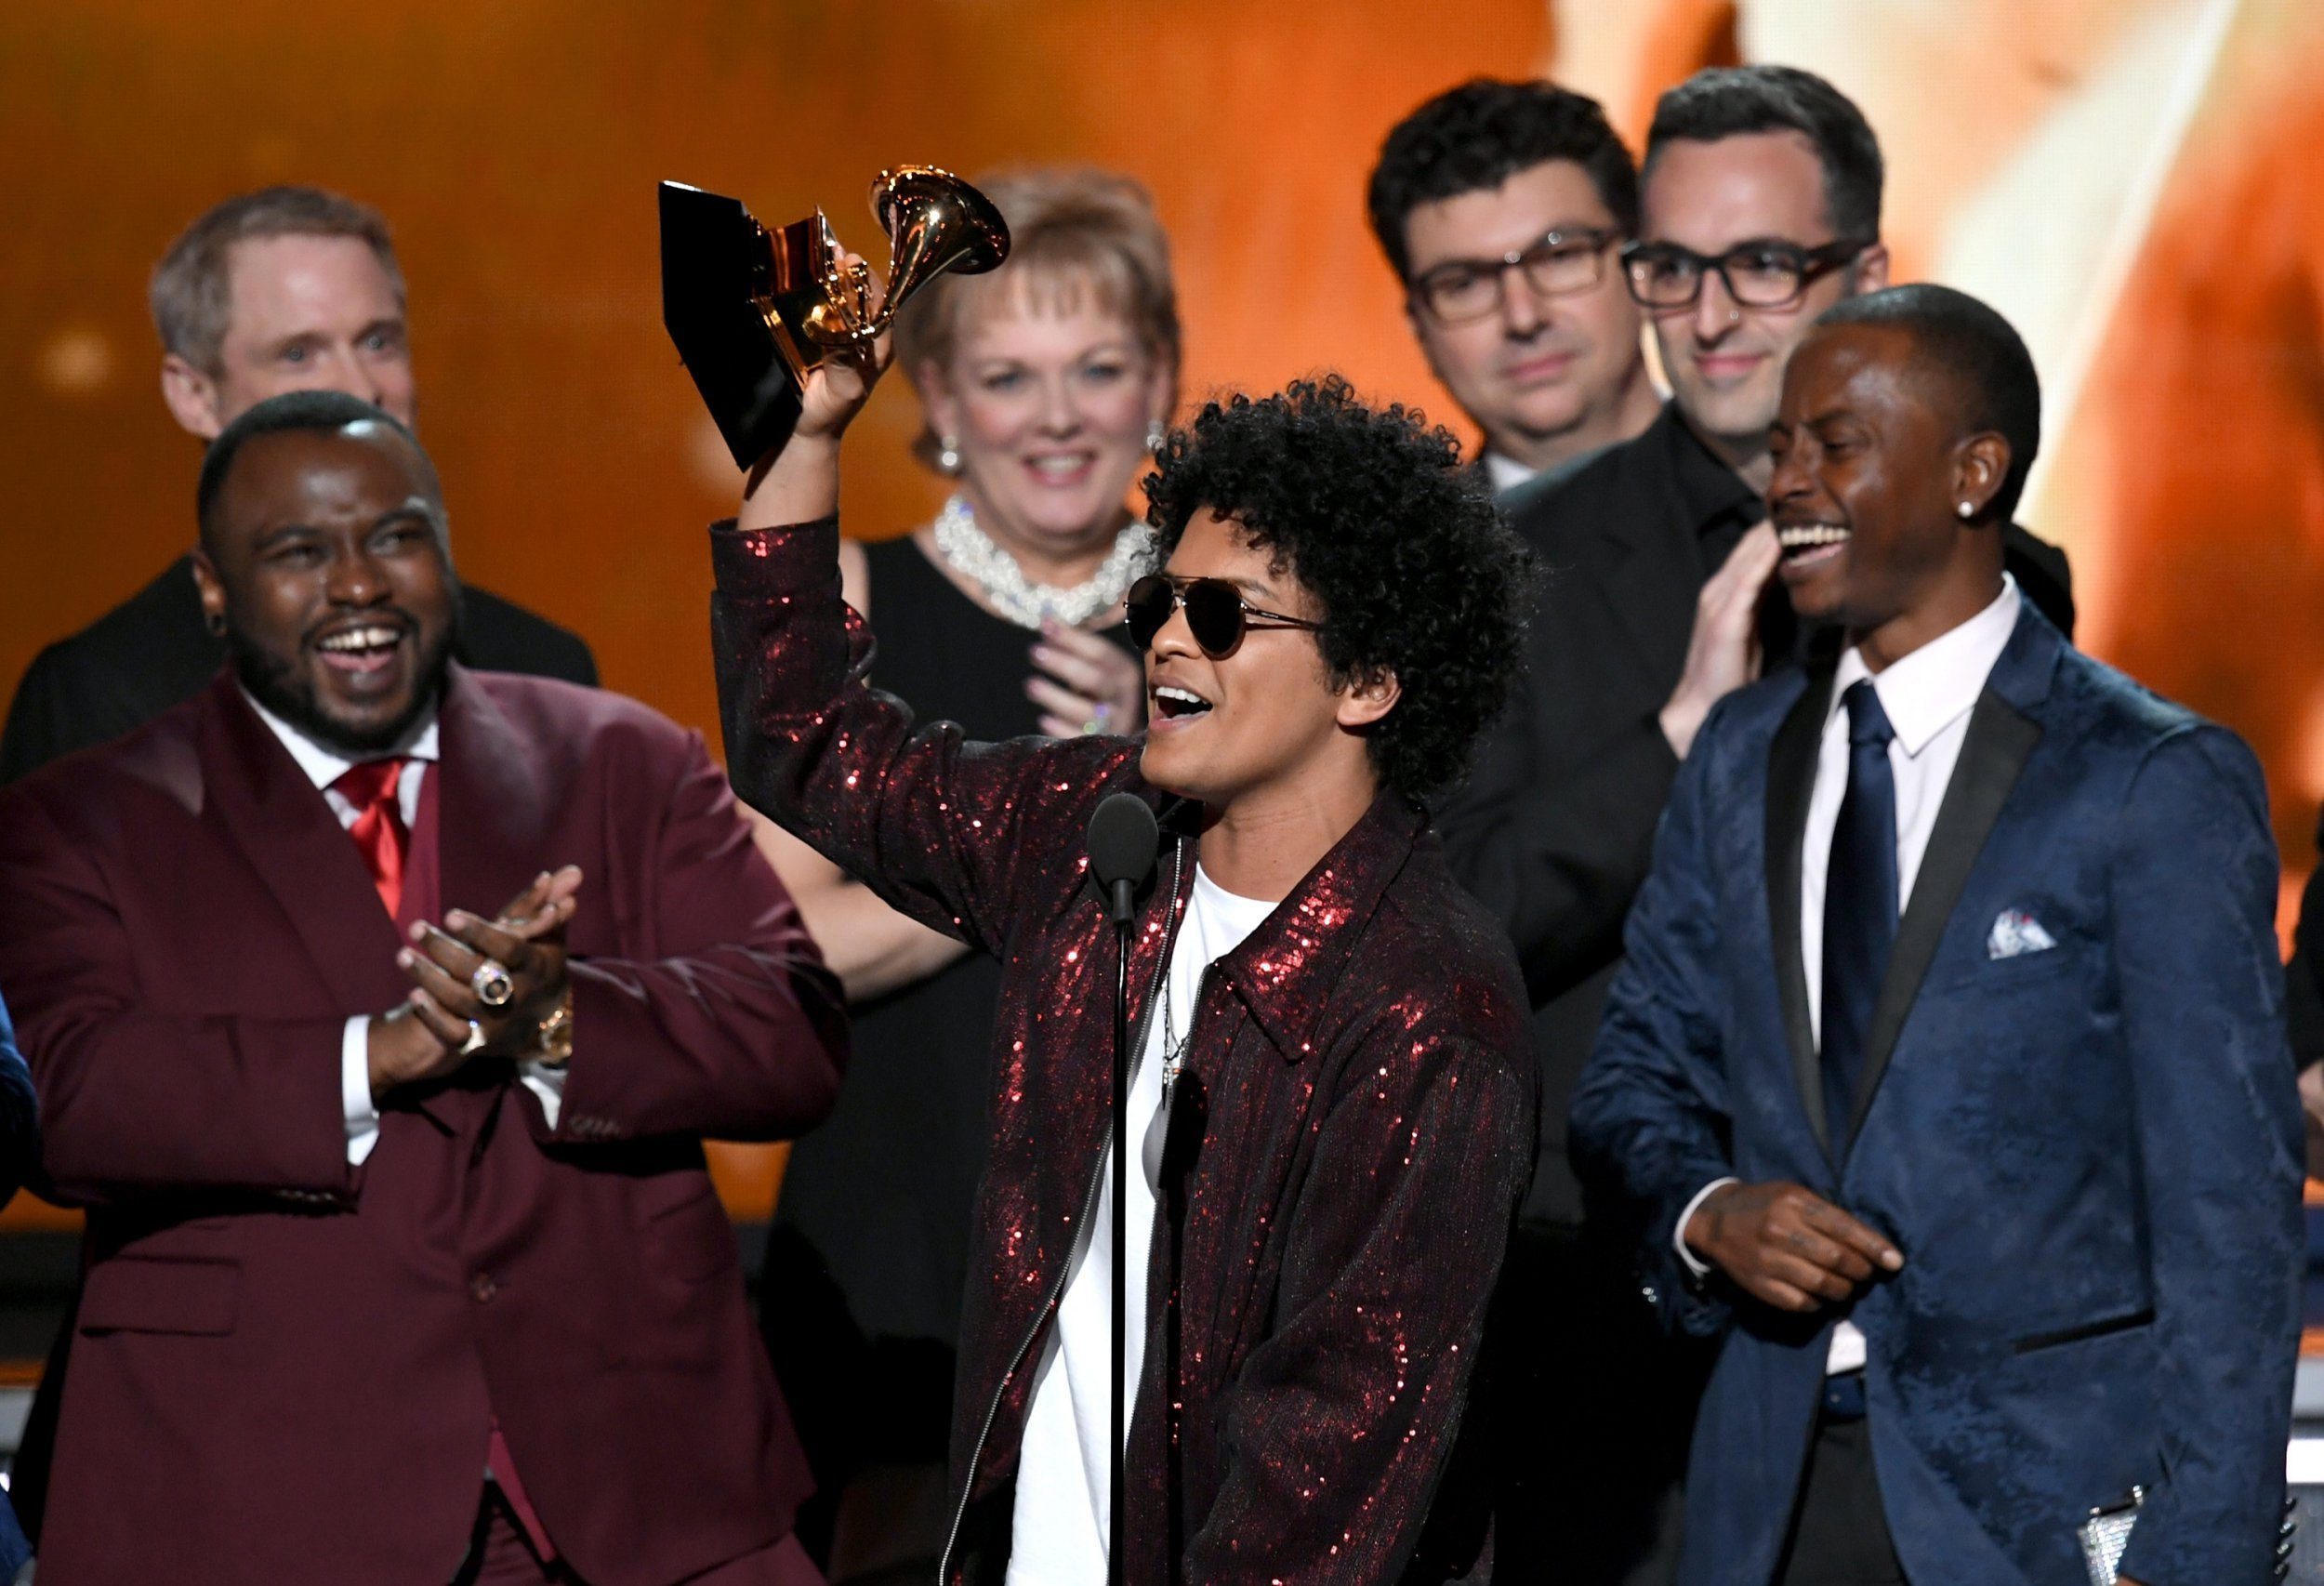 Bruno Mars leads winners with six awards at the Grammys 2018